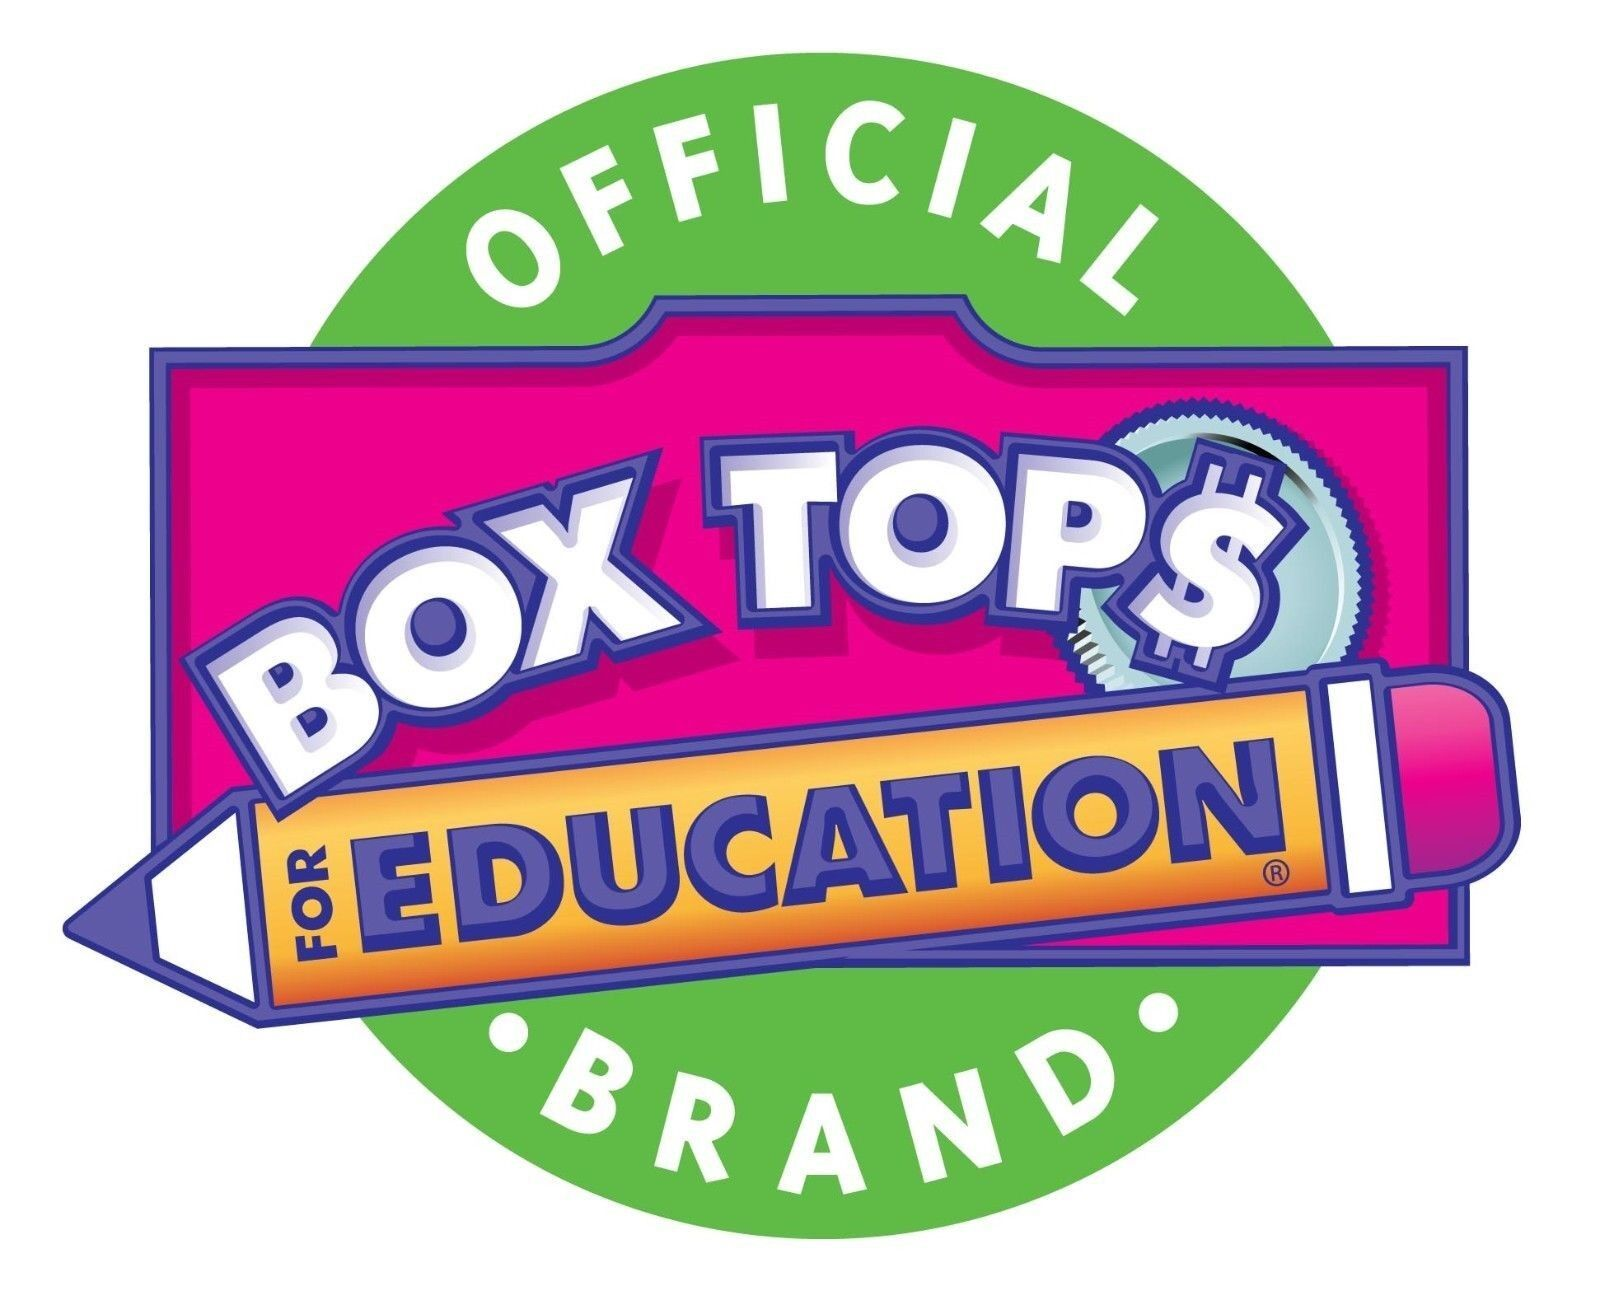 100 BOX TOPS FOR EDUCATION BTFE TRIMMED Exp 2019-21 Ship Today Tracked Lot